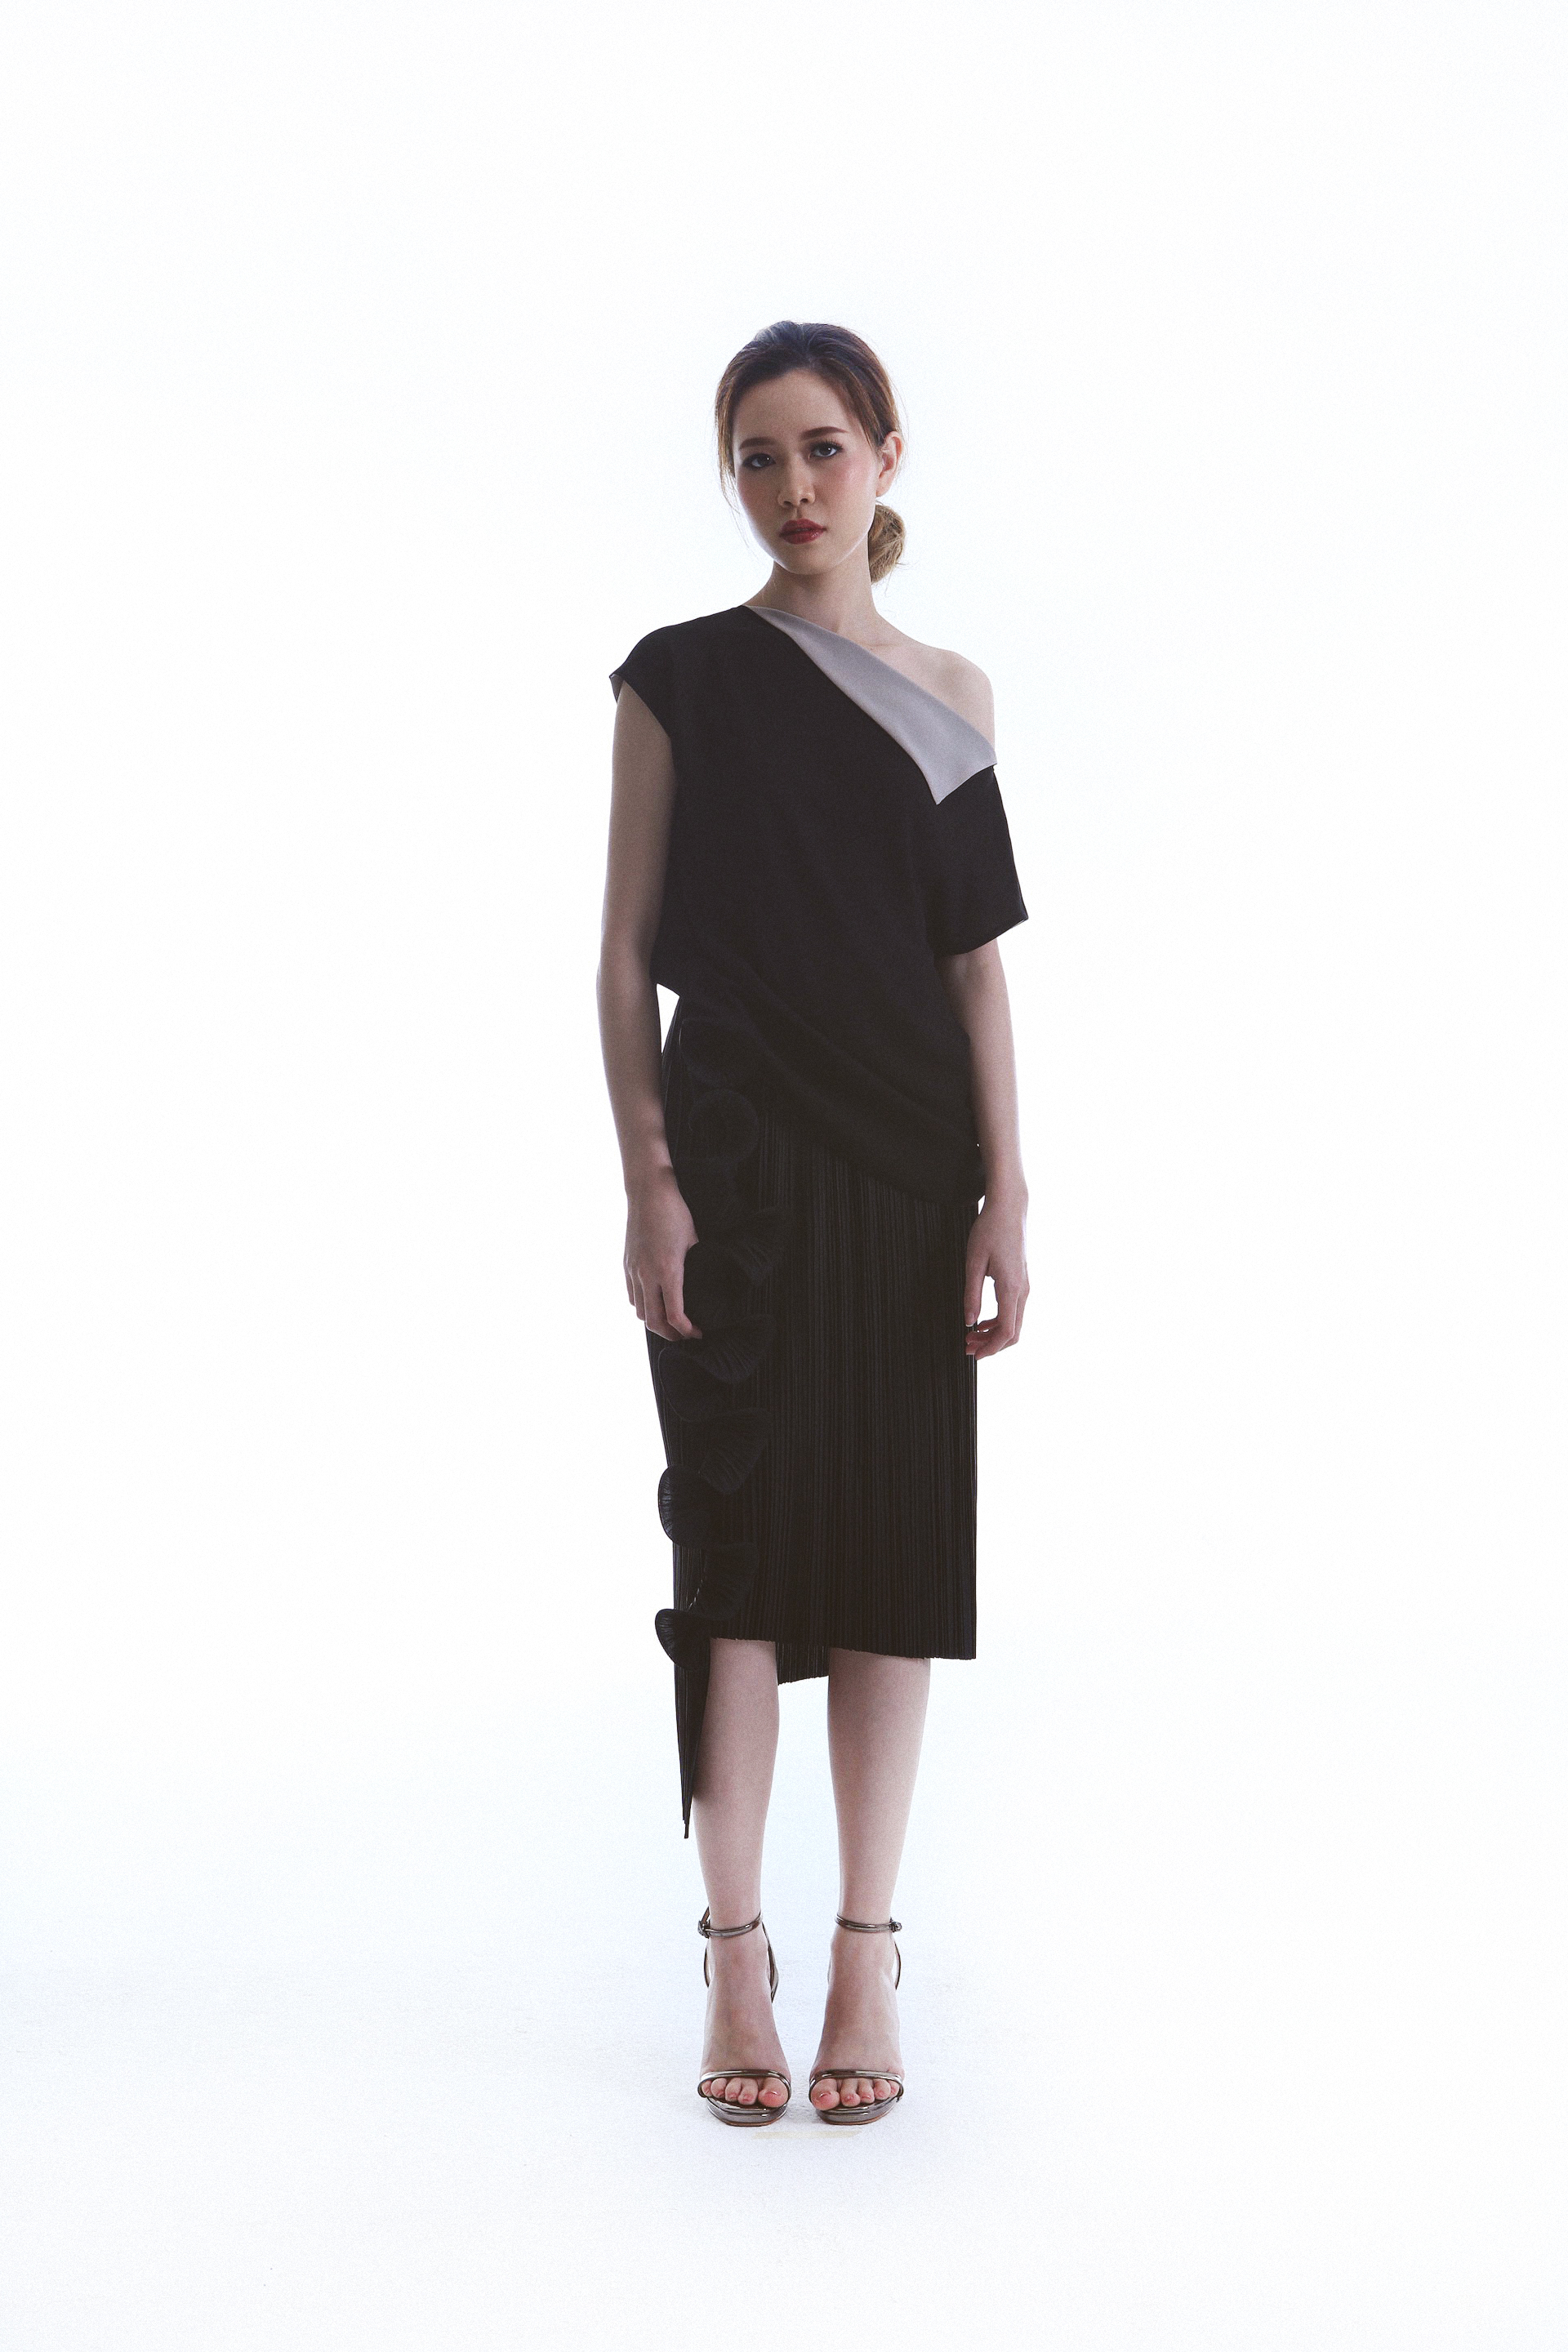 So Top worn with Till Skirt